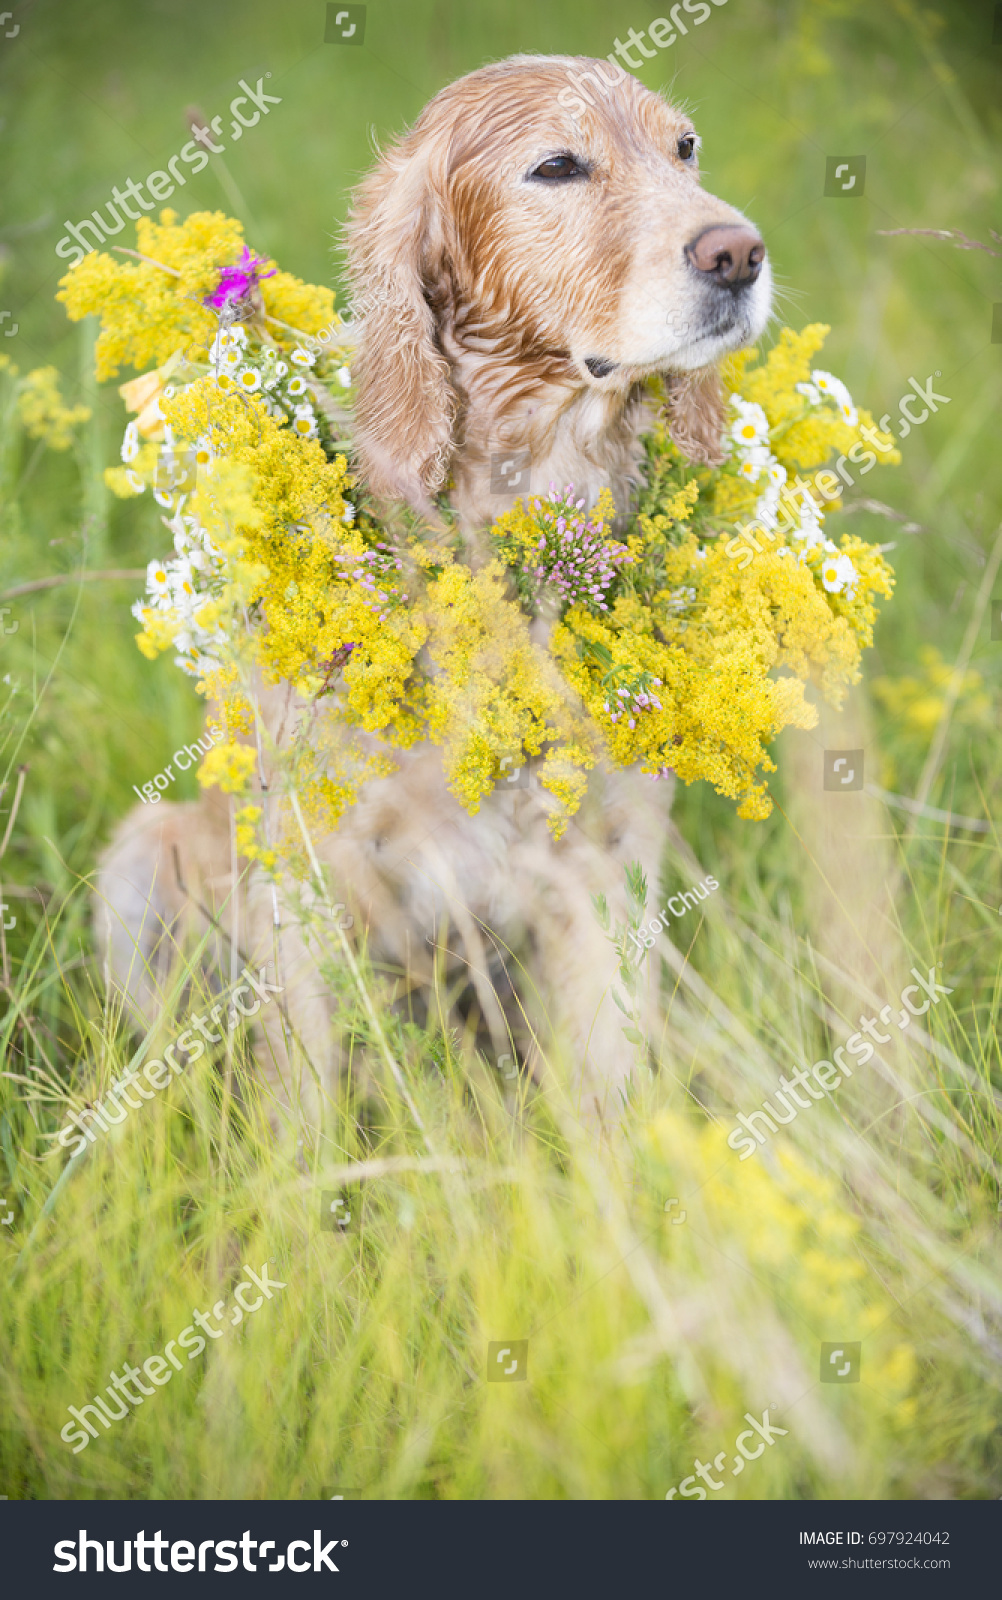 Dog Bouquet Flowers Stock Photo (Royalty Free) 697924042 - Shutterstock